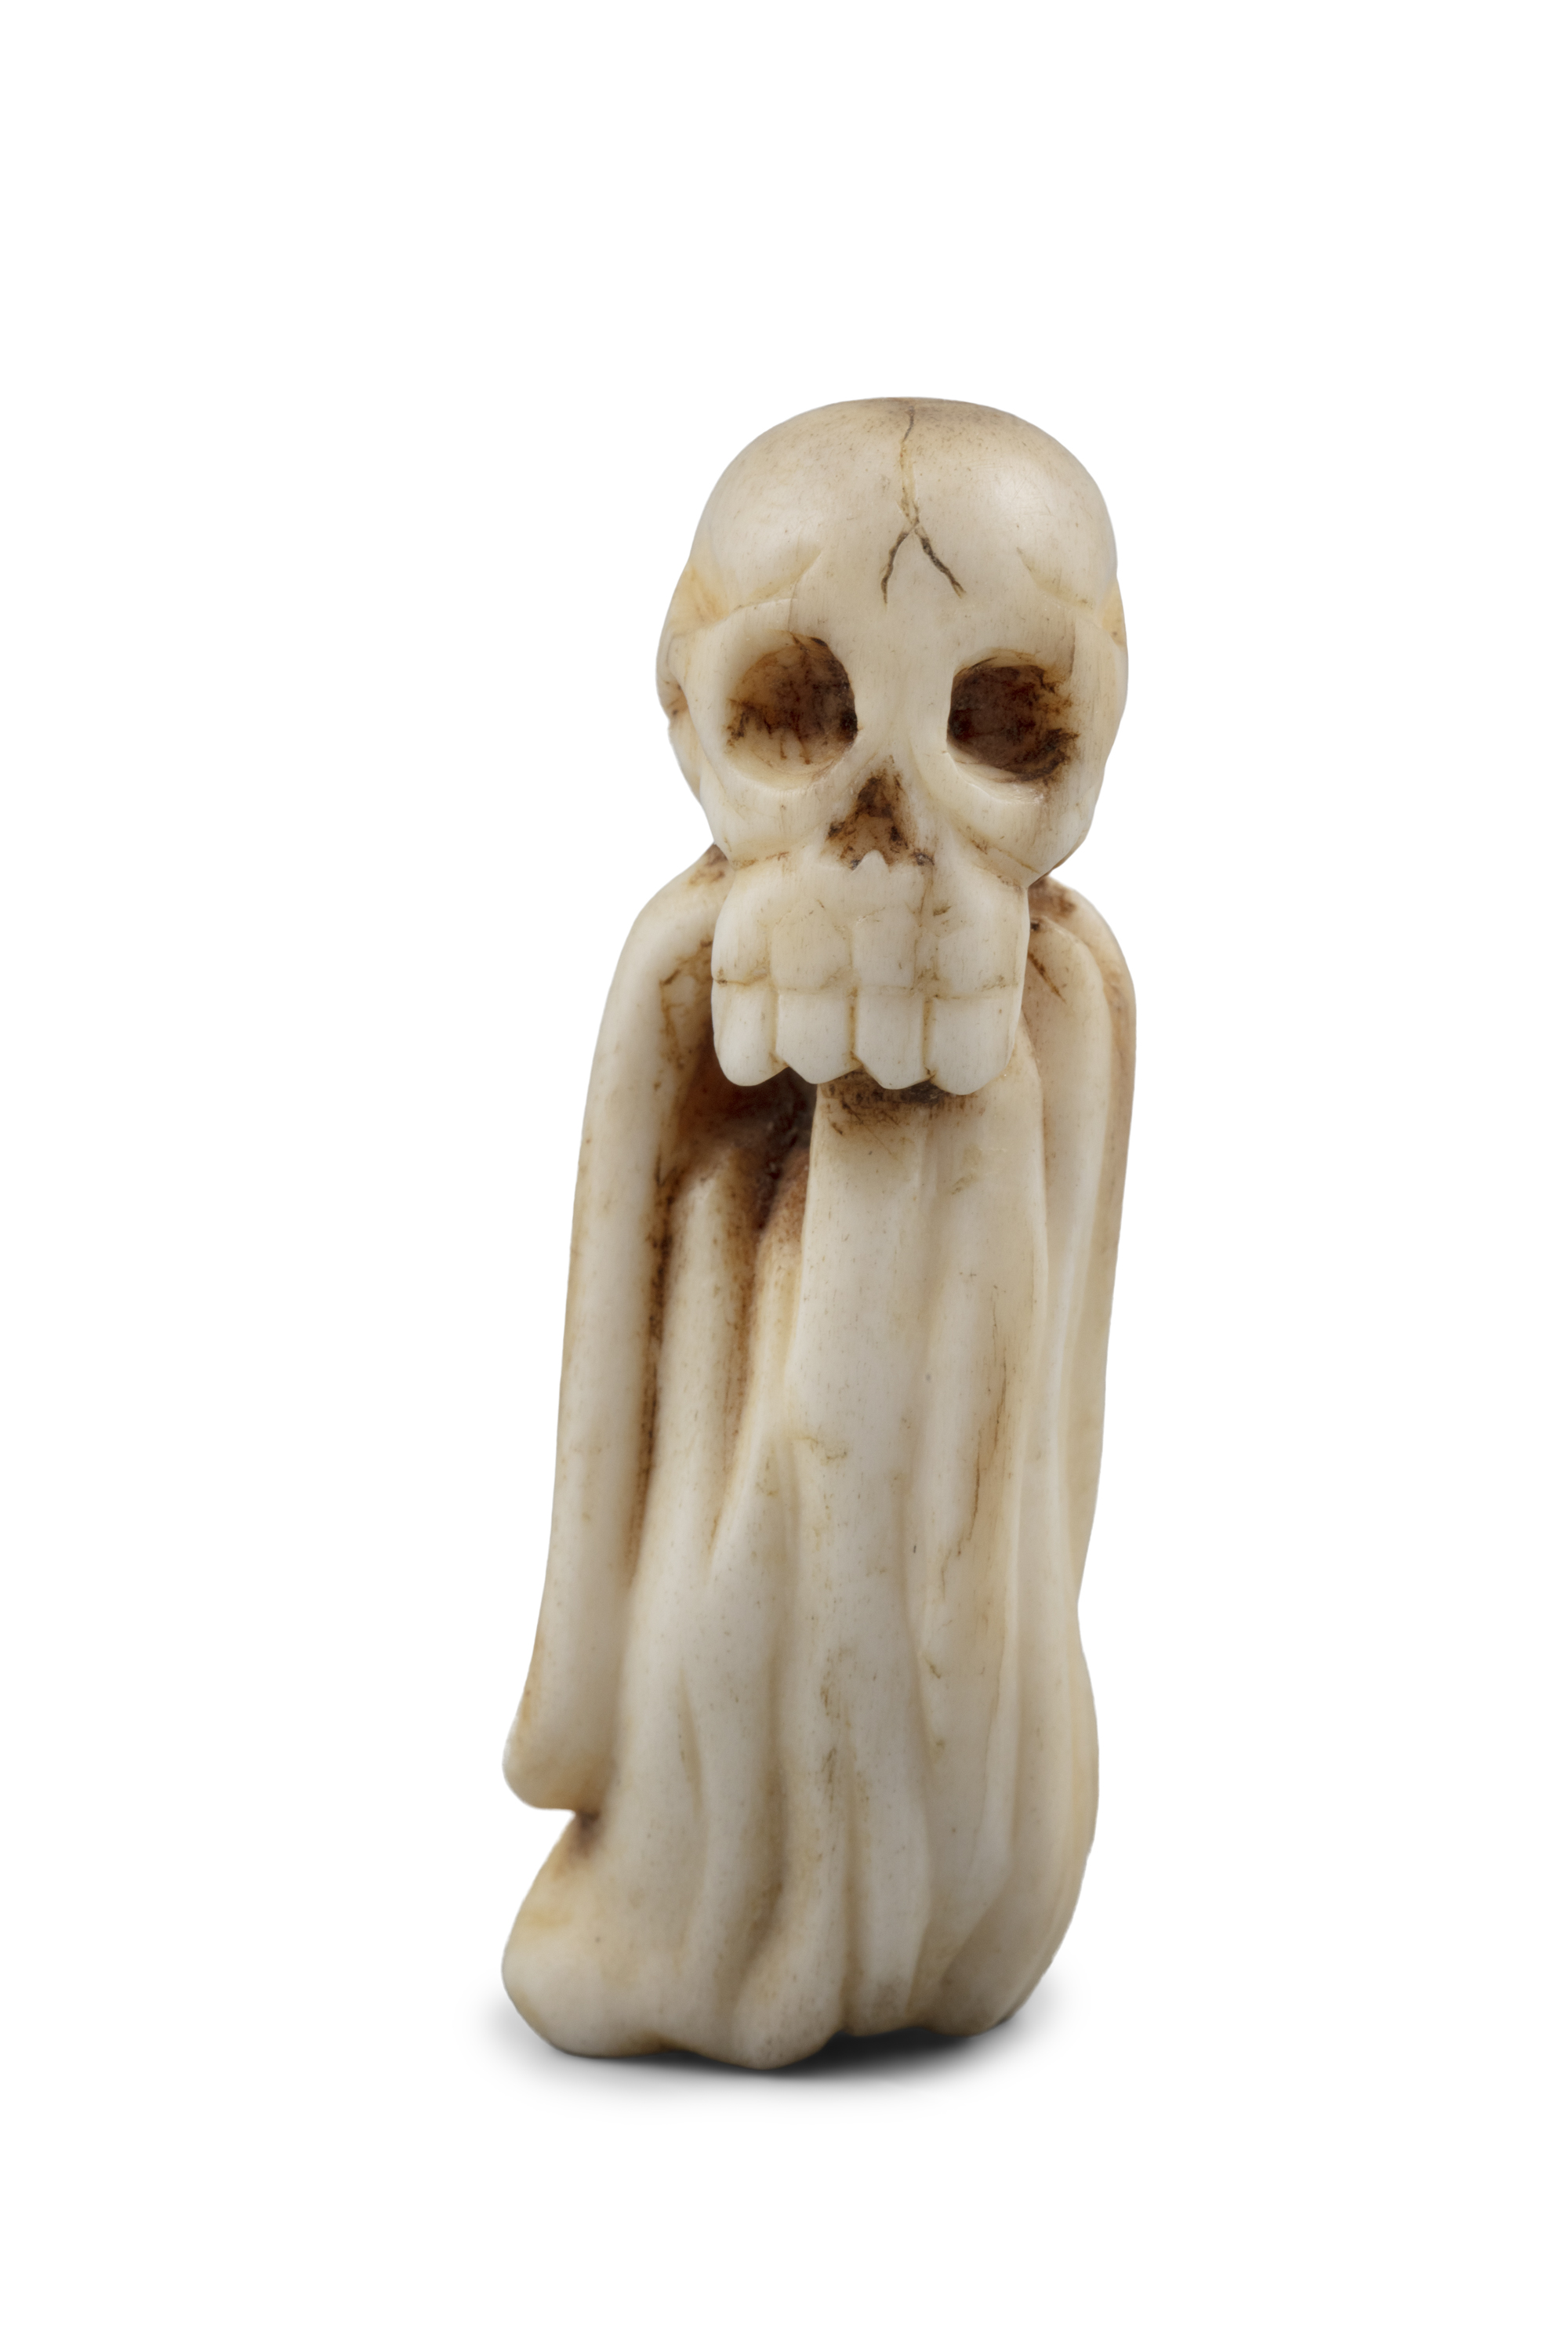 *VANITY - A GROUP OF TWO (2) 'SKULL' KATABORI NETSUKE Japan, 19th century The first one carved out - Image 3 of 18